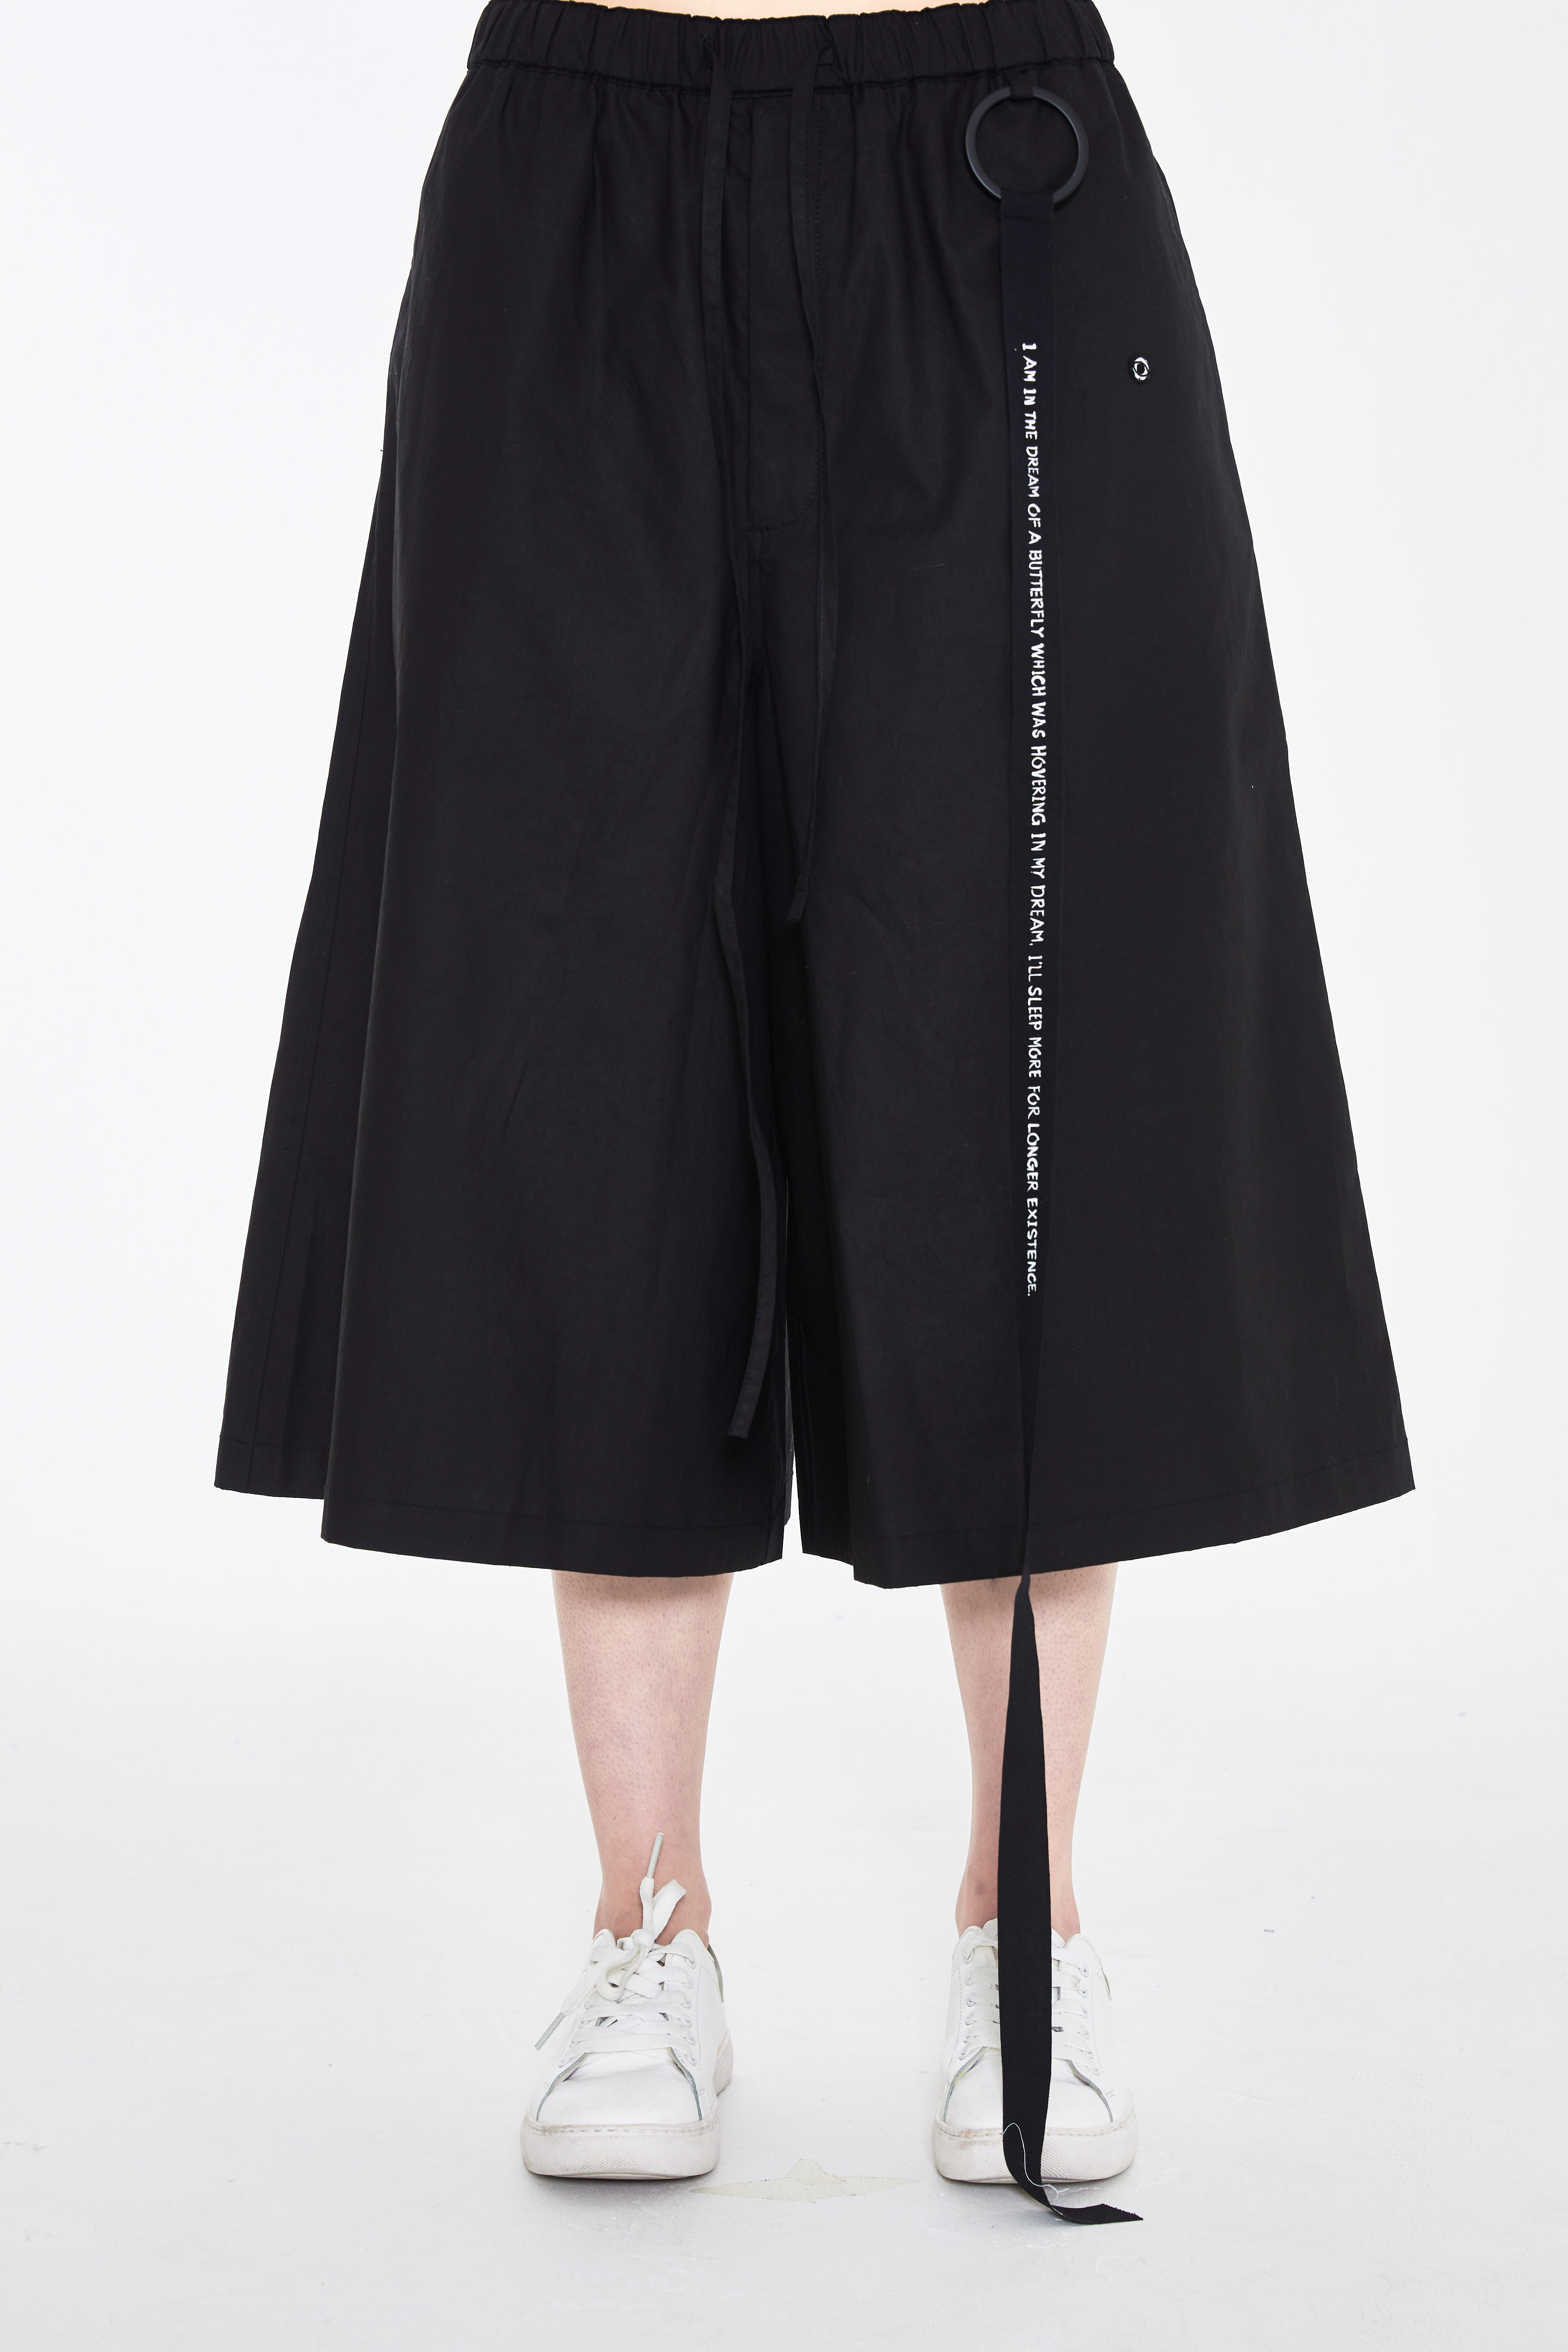 S/S19 LOO WIDE PANTS_BLACK